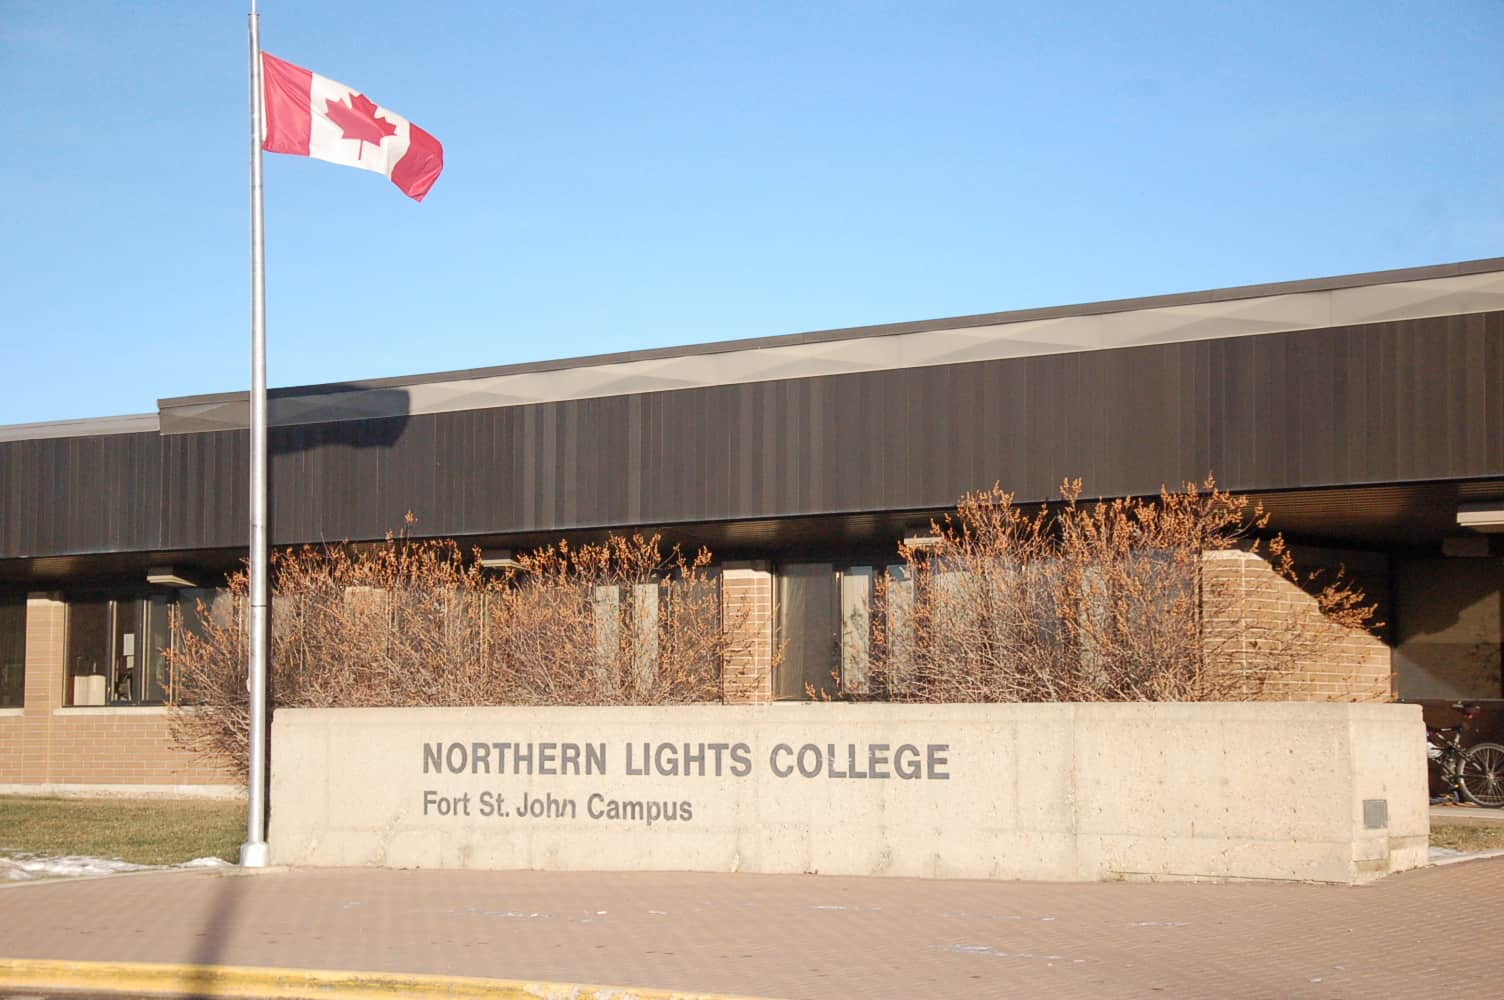 https://www.blueskyconsultancy.com/assets/uploads/university/campus/1527750899-northern lights college Fort St. John campus.jpg